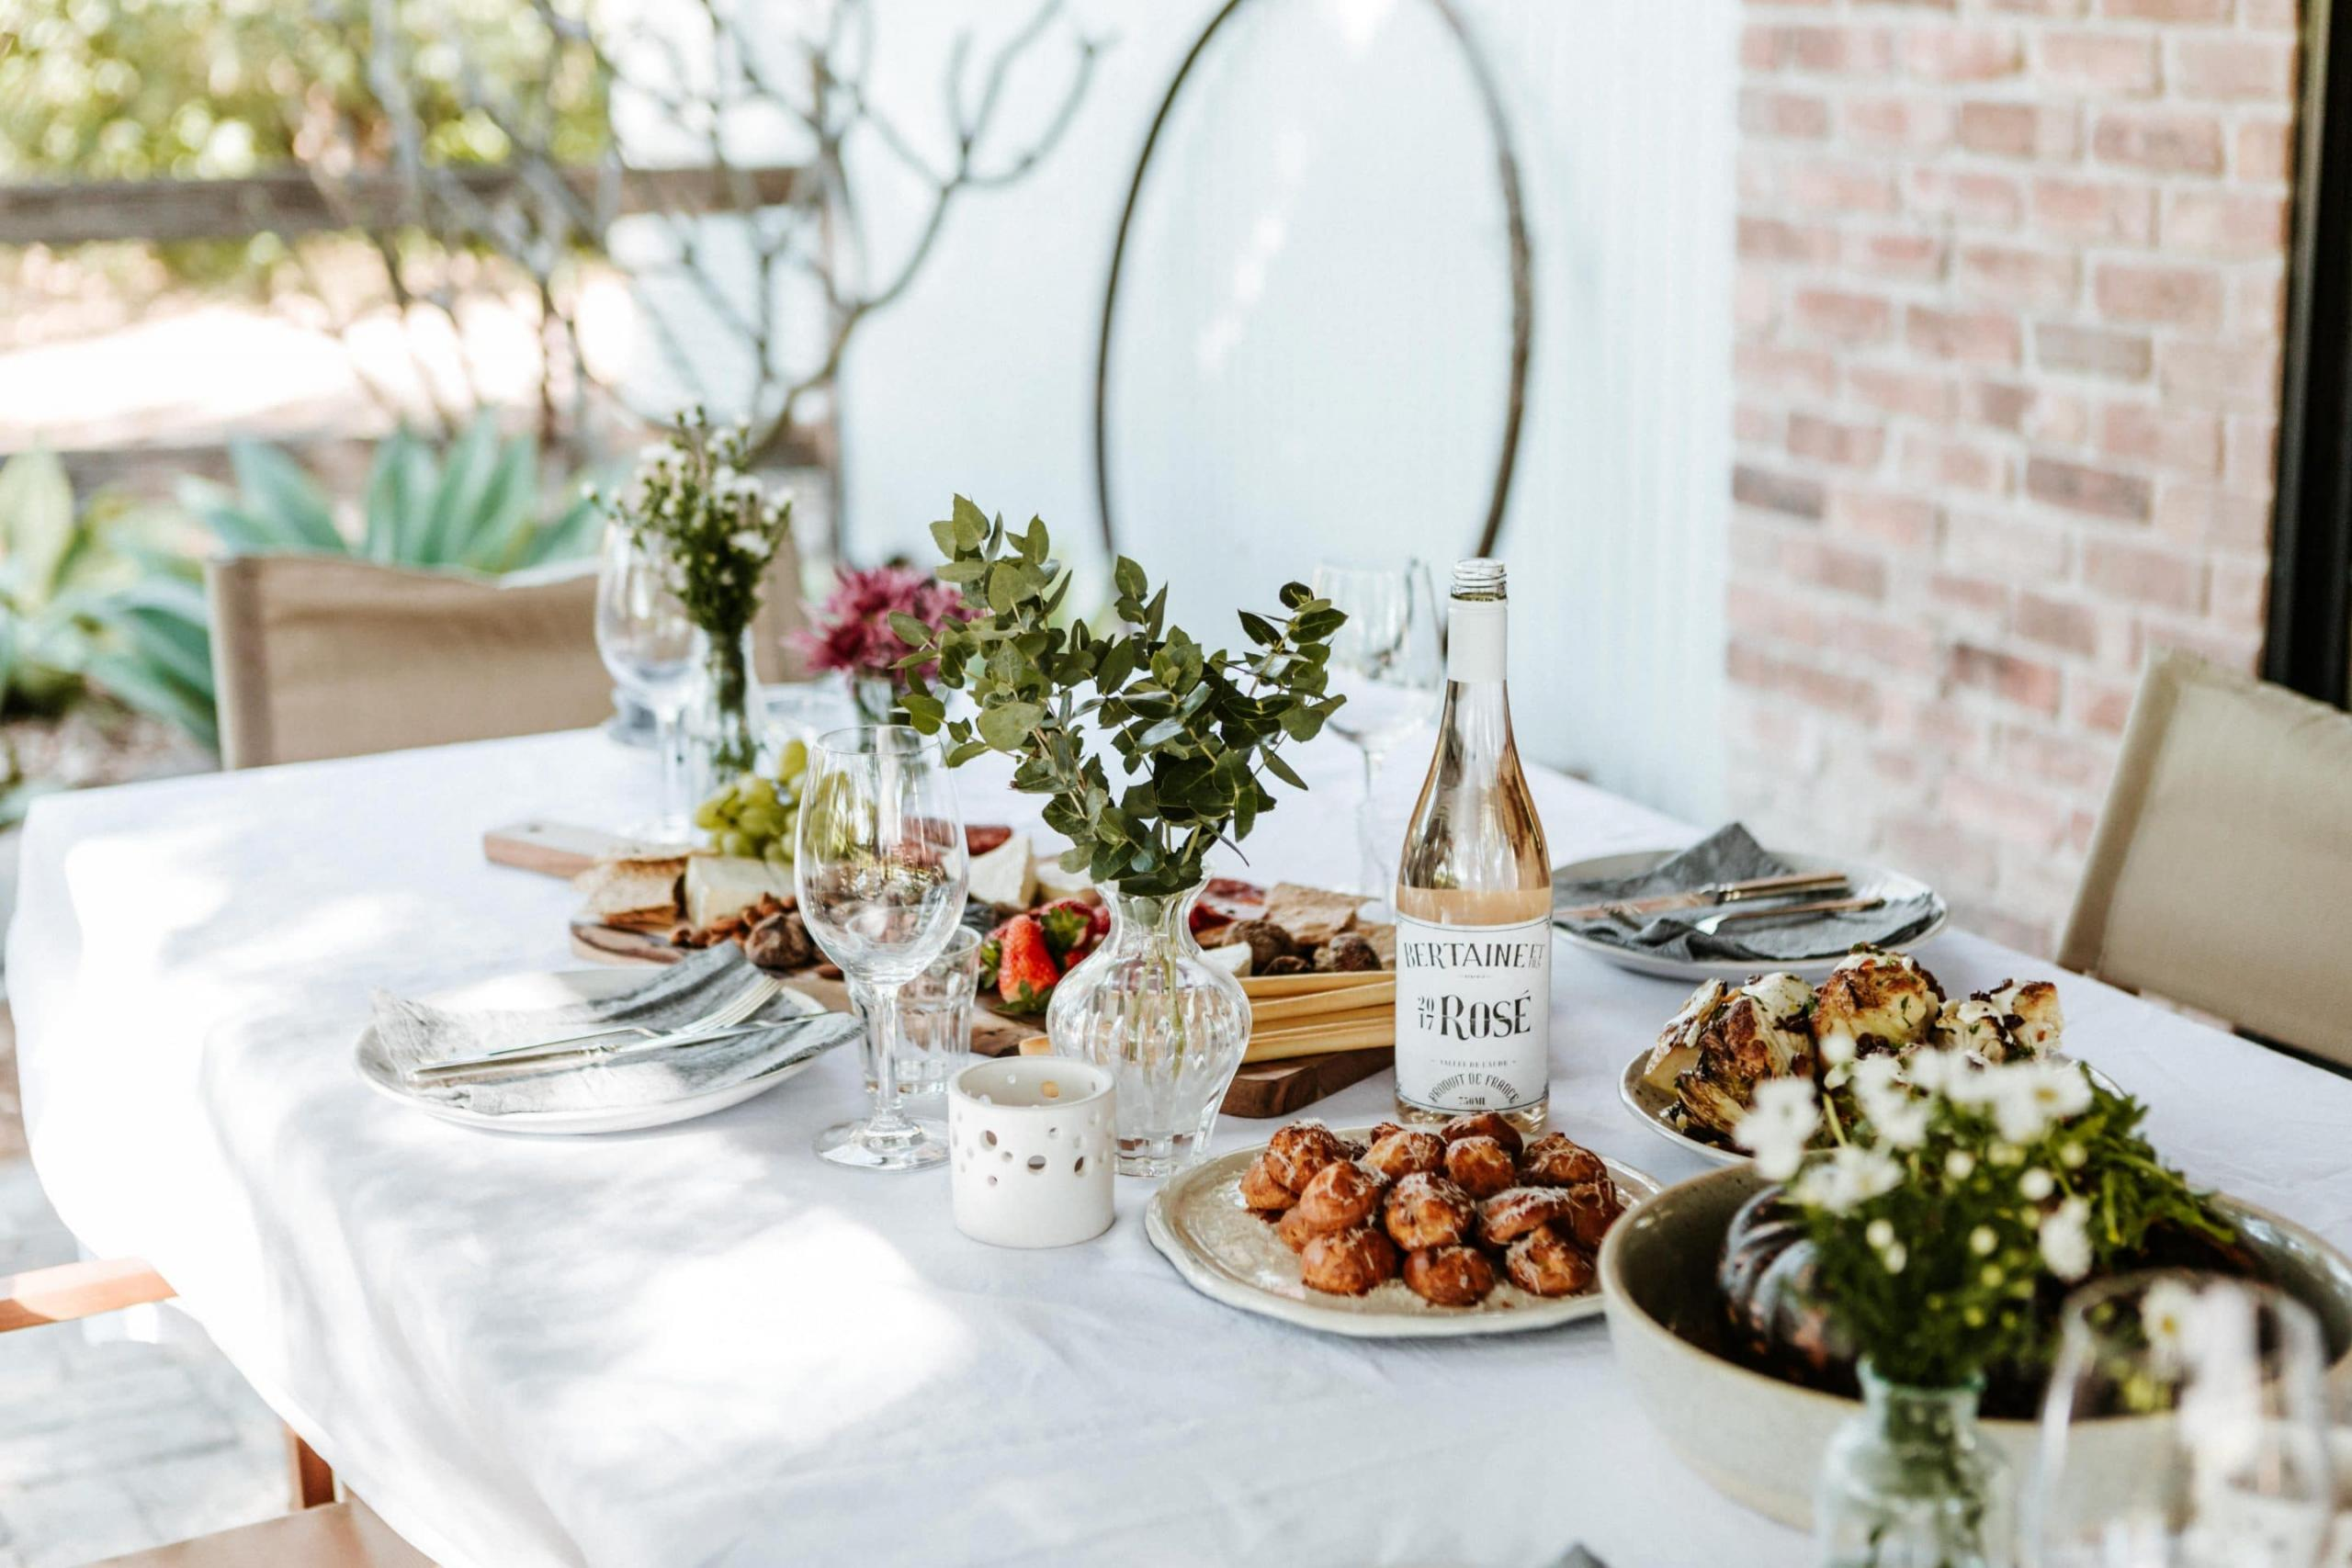 5 Tips for Outdoor Entertaining This Summer